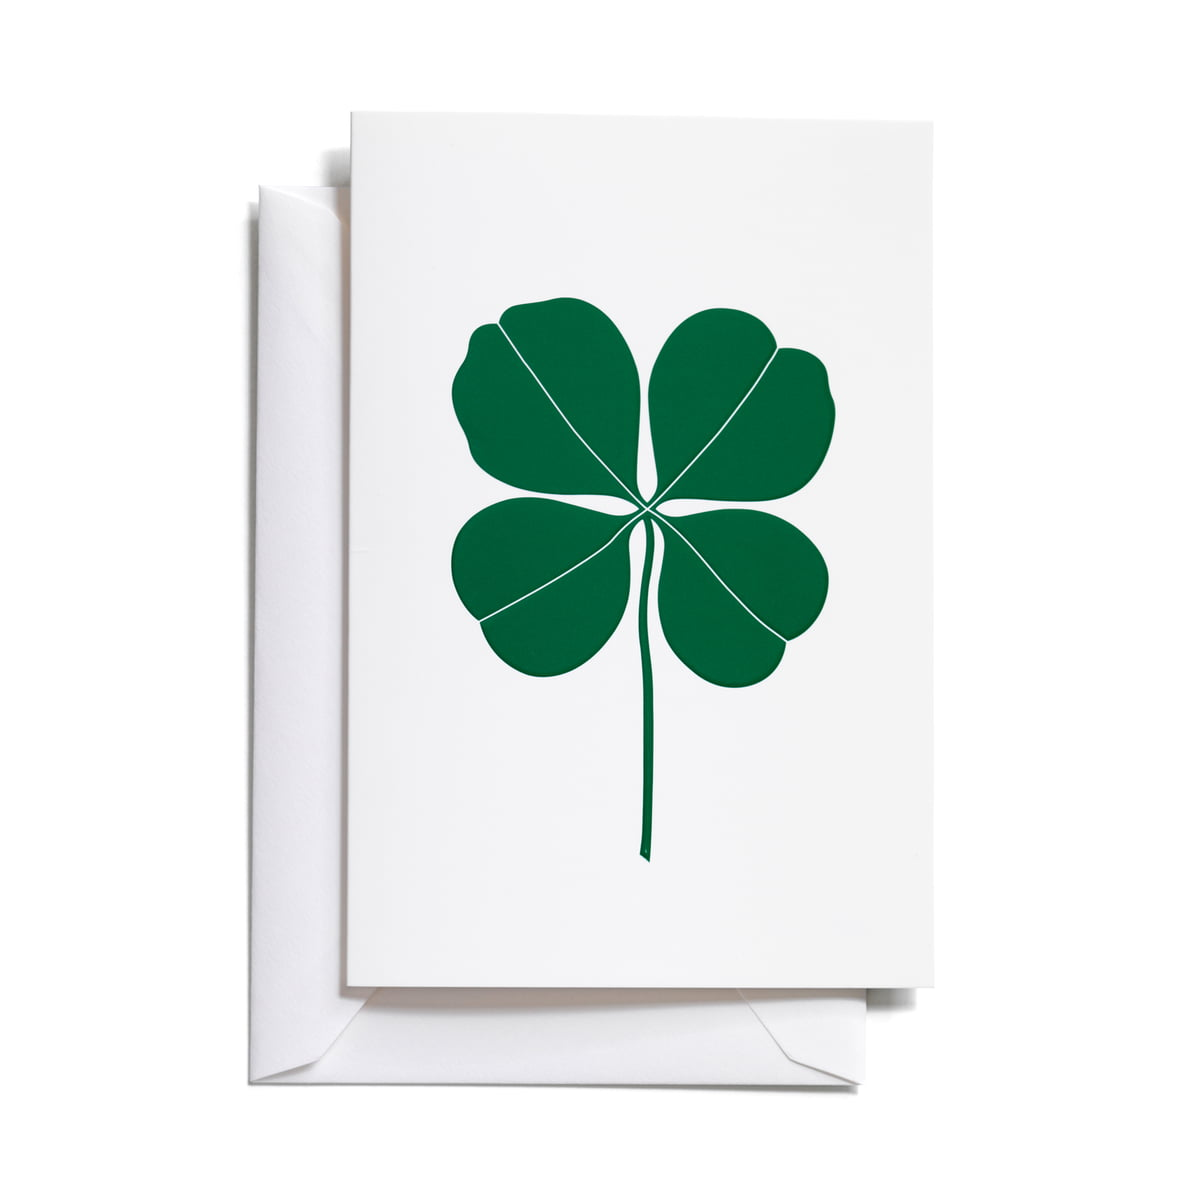 The Greeting Card Four Leaf Clover By Vitra